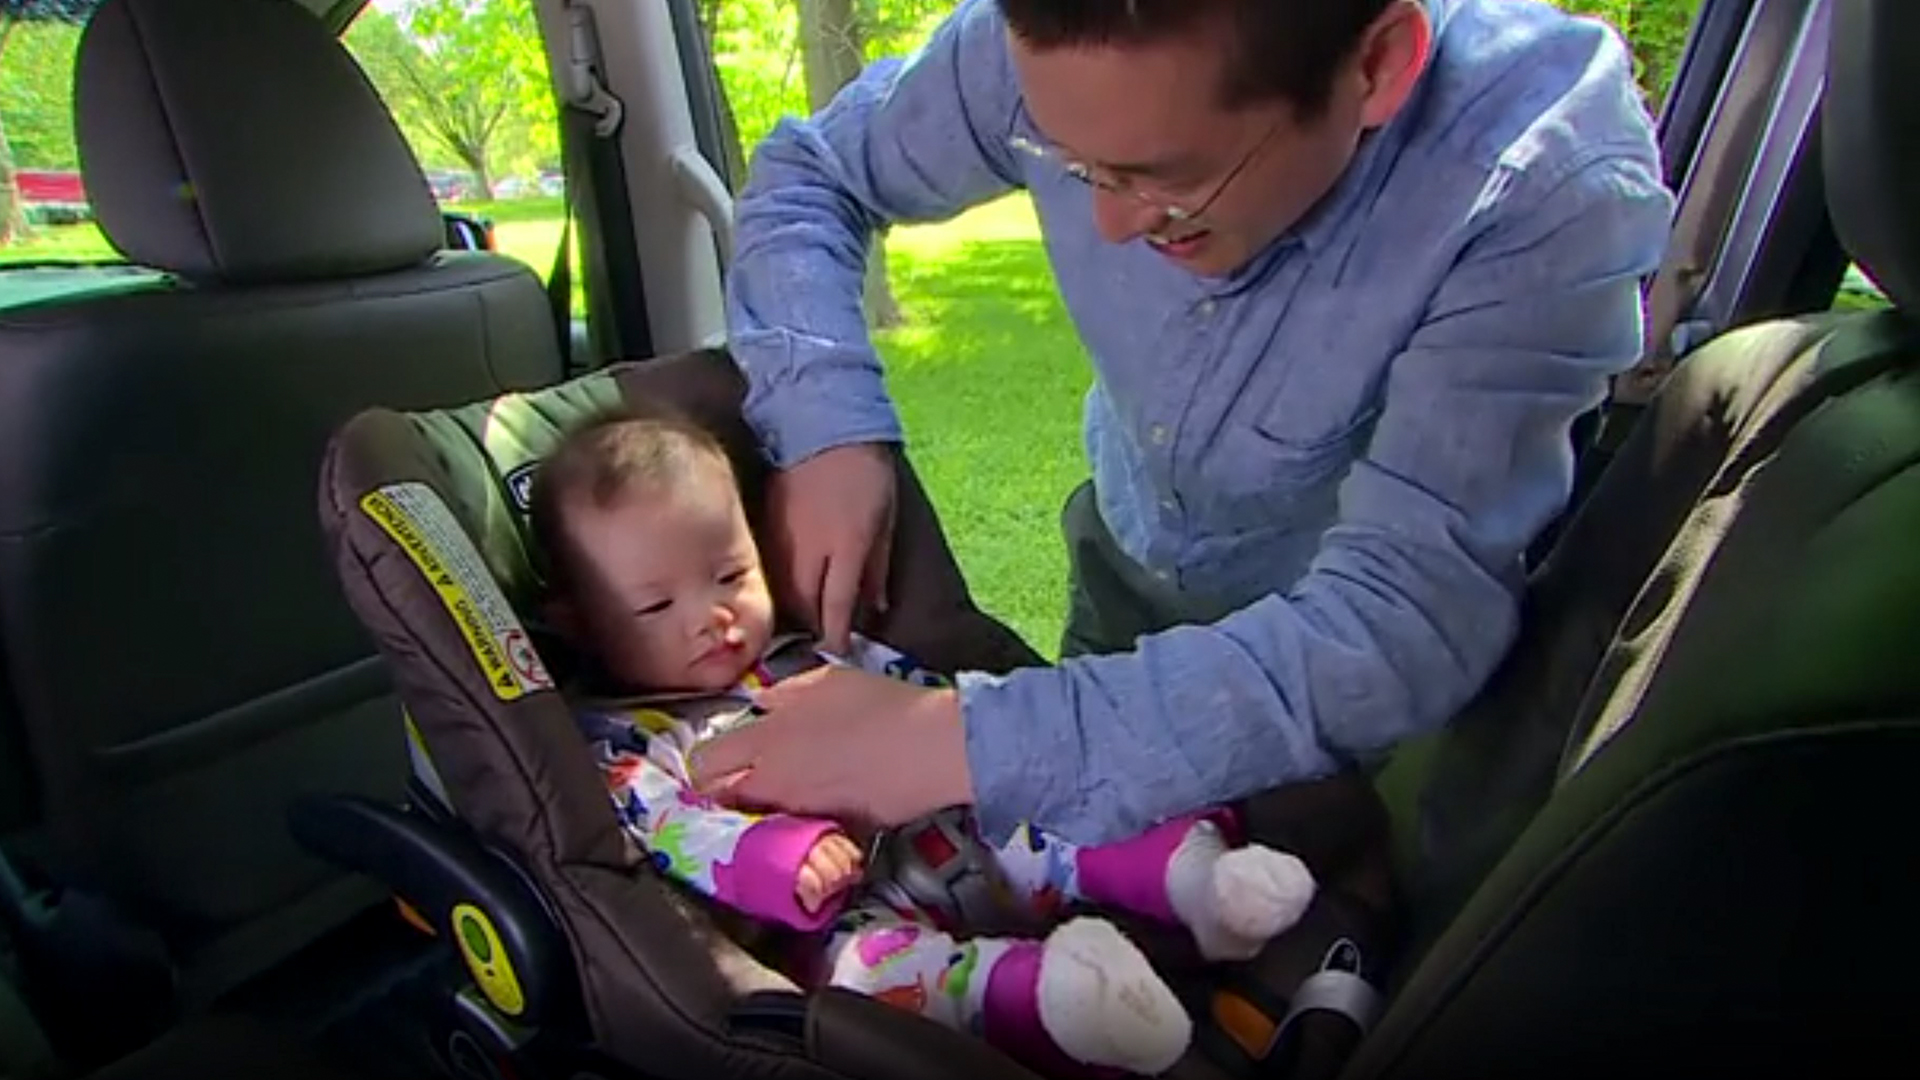 Children in child restraints